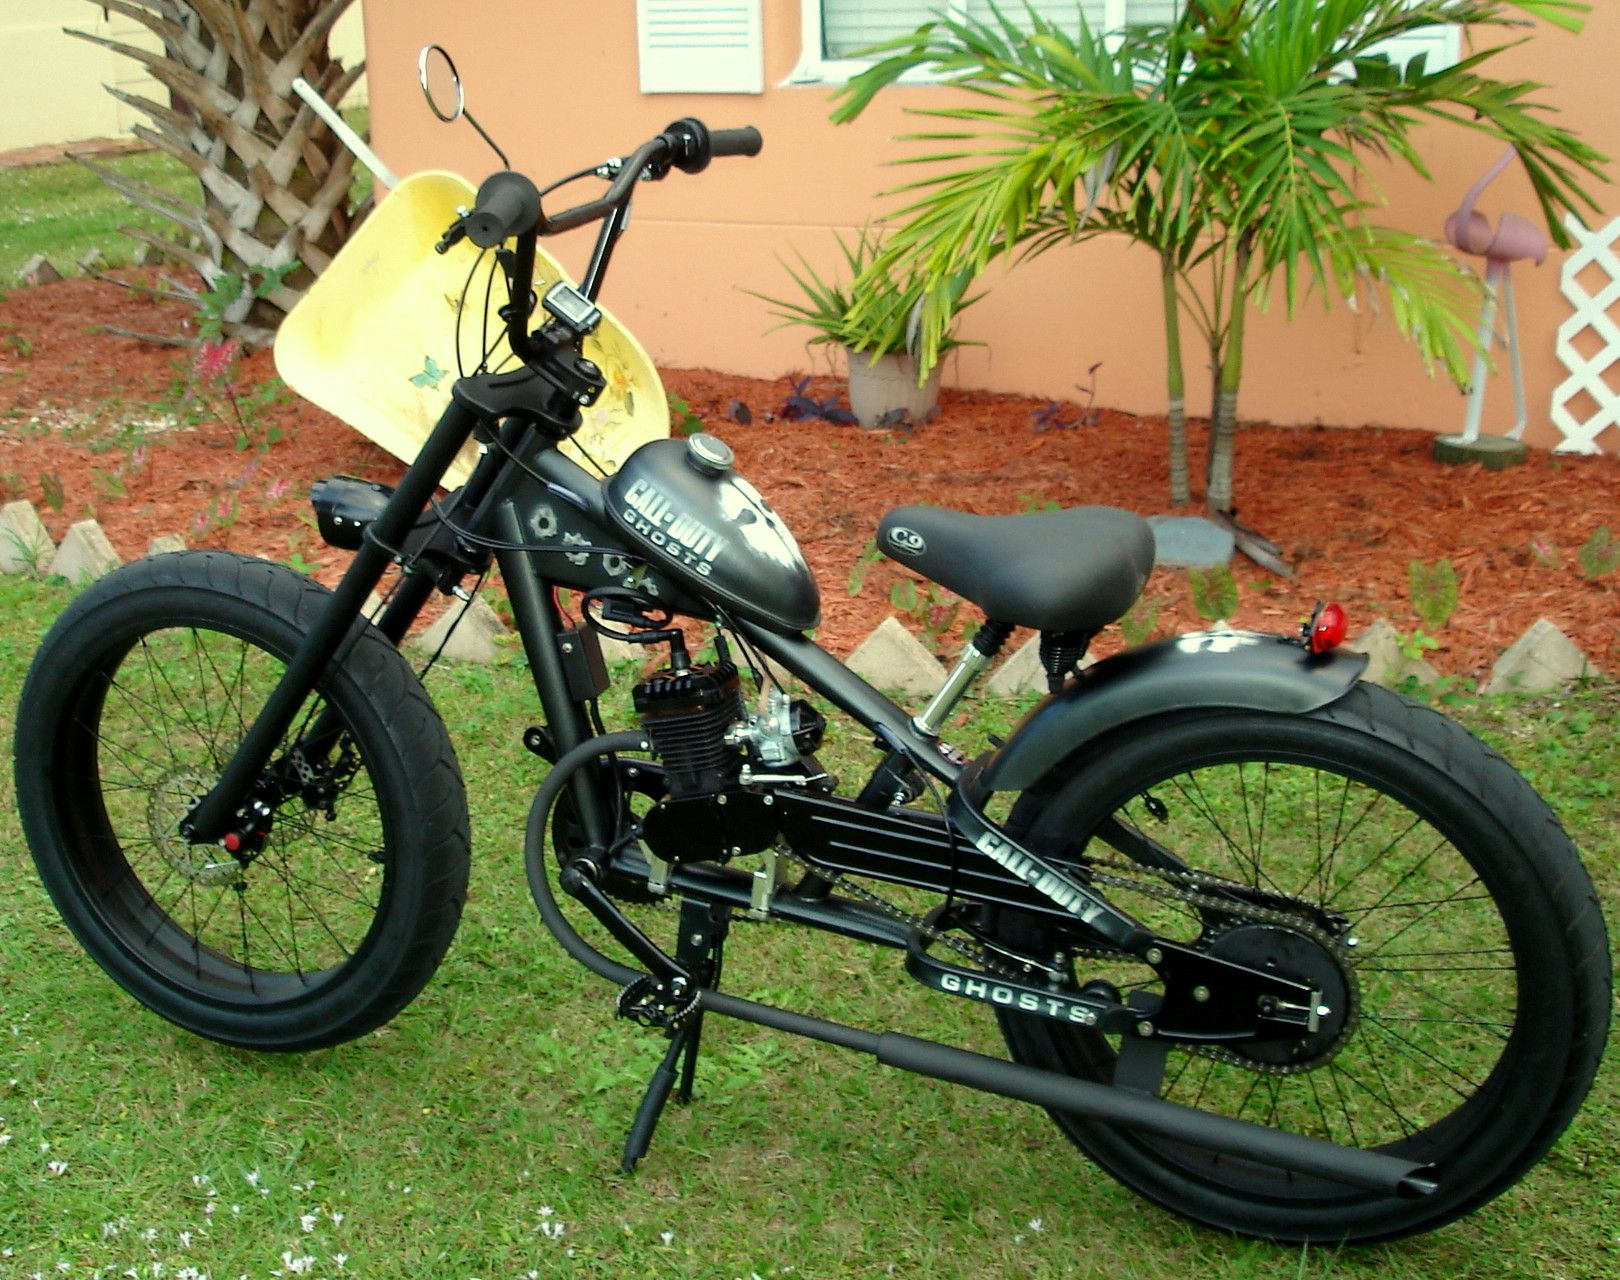 Photos of custom motorized bicycles.See OCC Schwinn ...